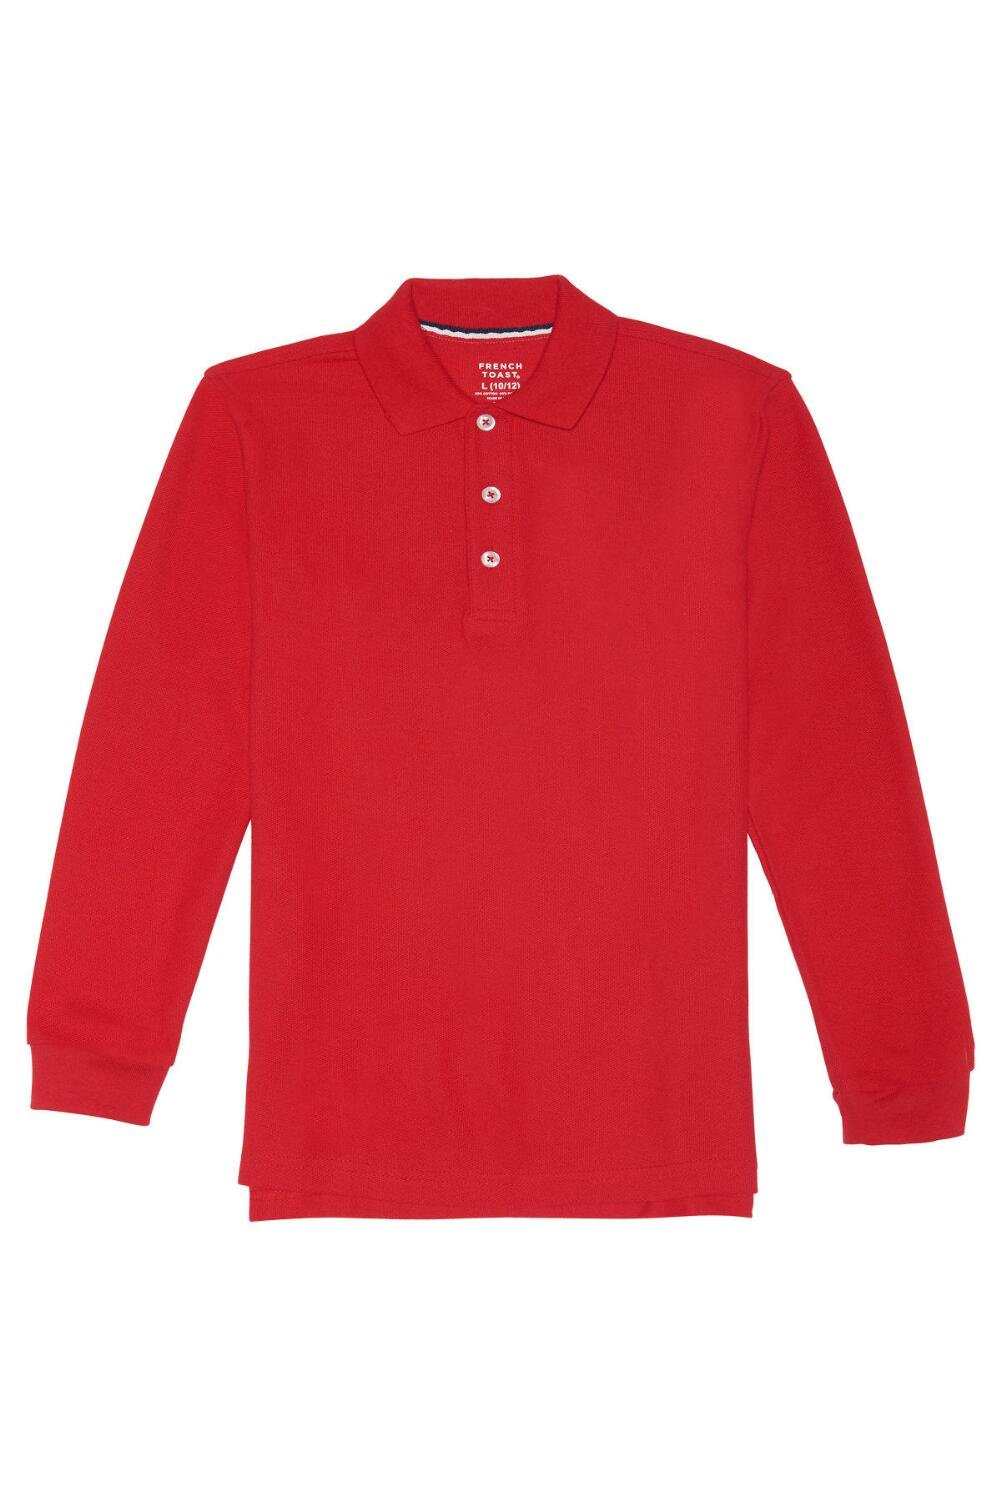 French Toast Big Boys' Long-Sleeve Pique Polo, Red, L (10/12)